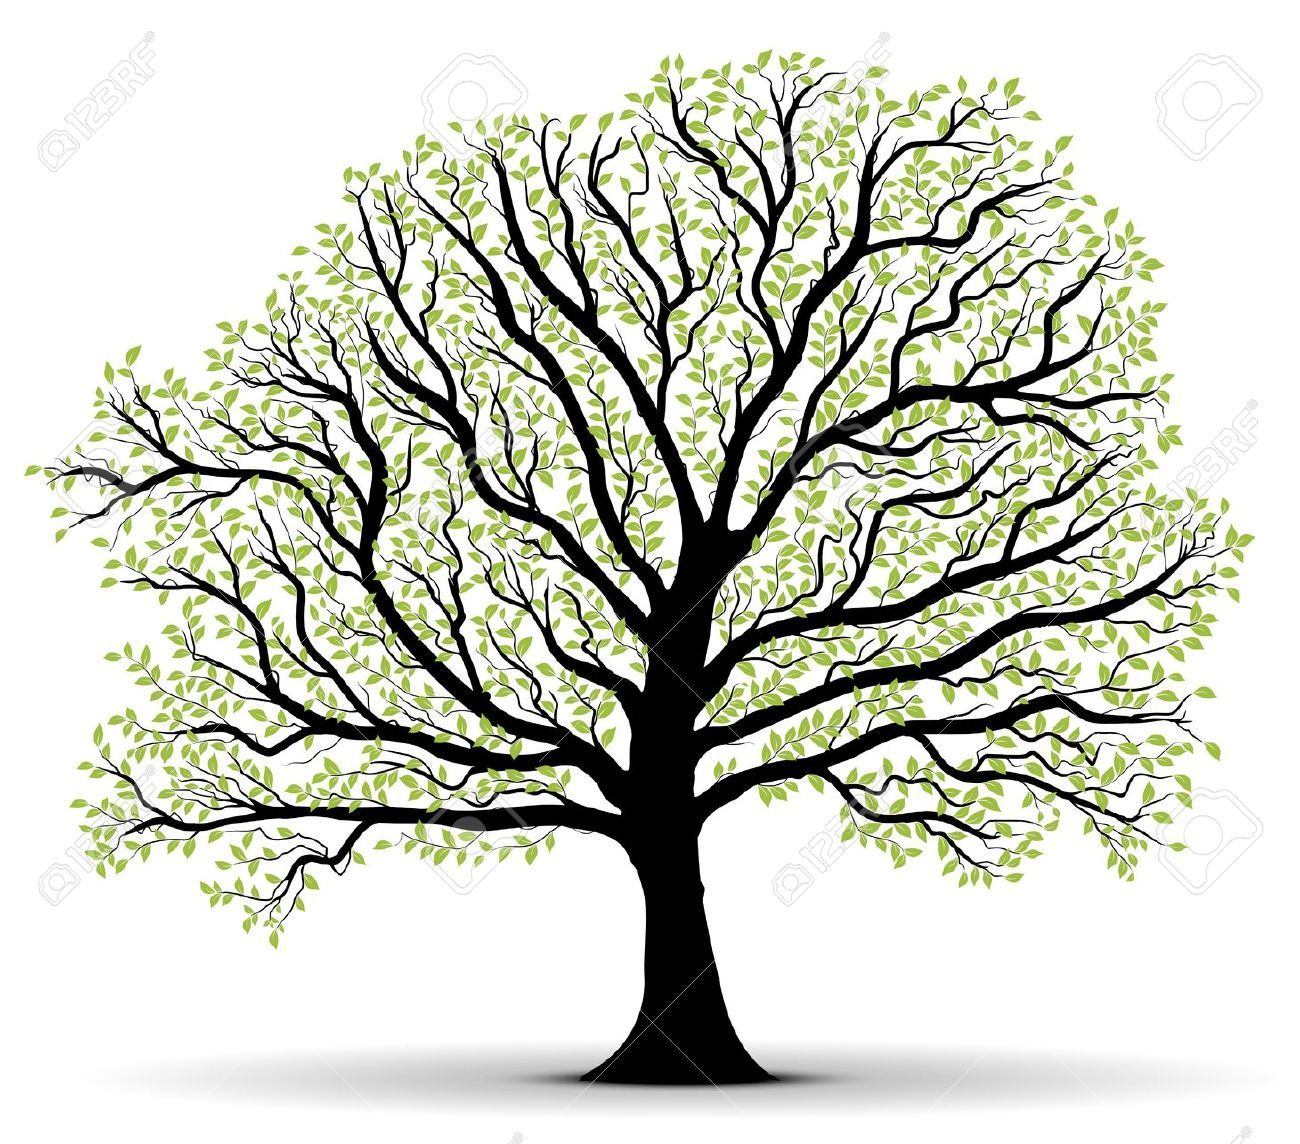 tree trunk silhouette - Google Search | Crafts | Pinterest | Tree ...